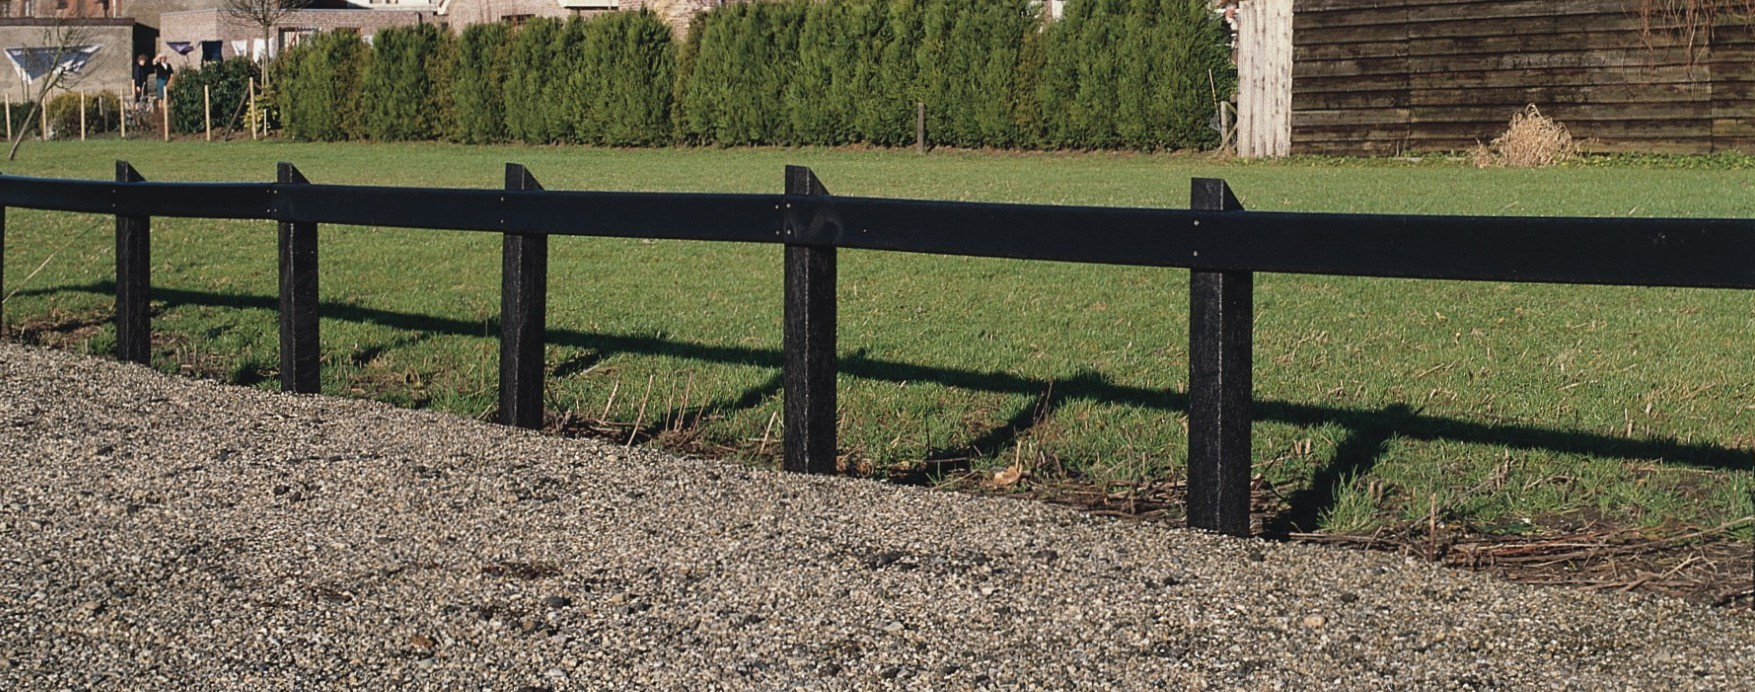 Local Authority Fencing - Post and Rail